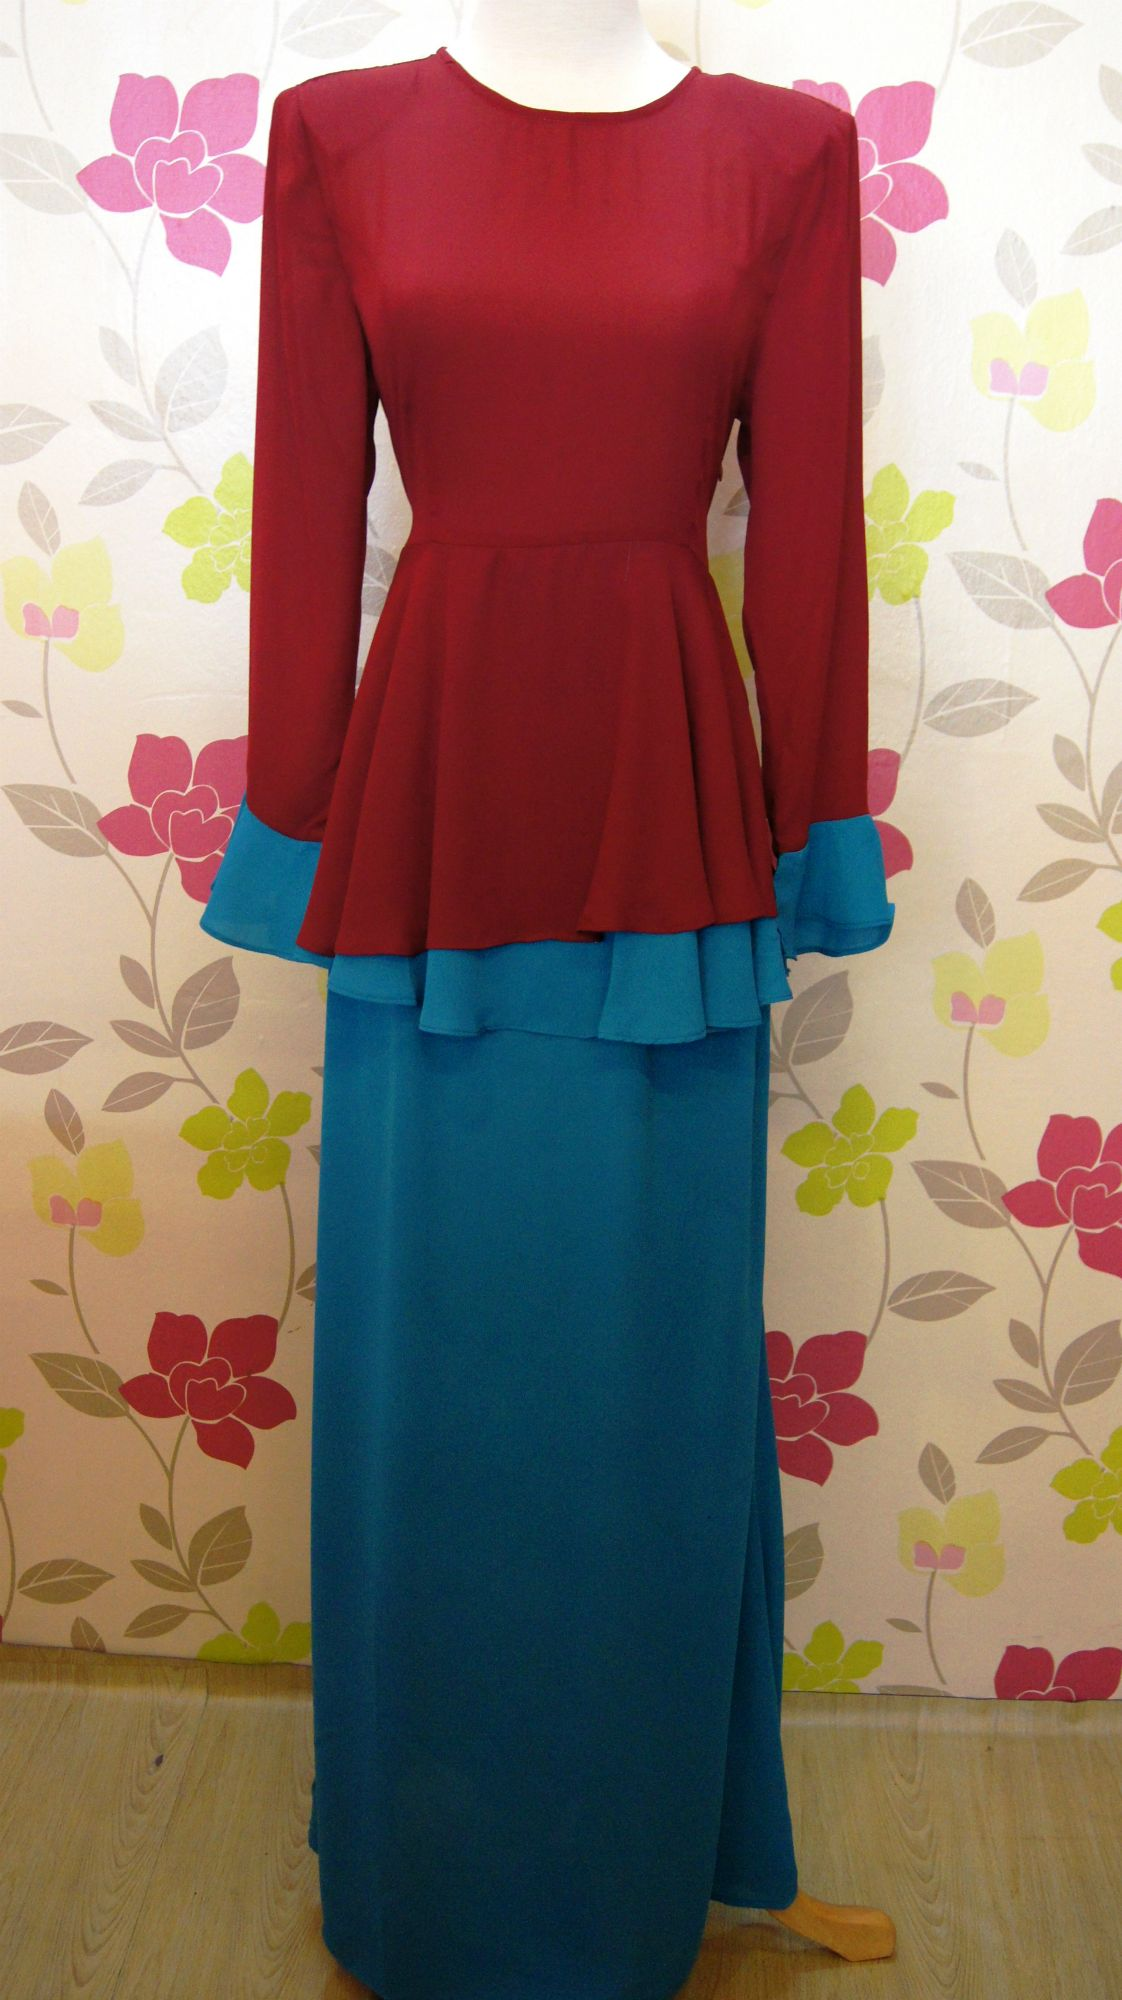 Baju Kurung Peplum Color Blocking Merah Hati Blue Butik